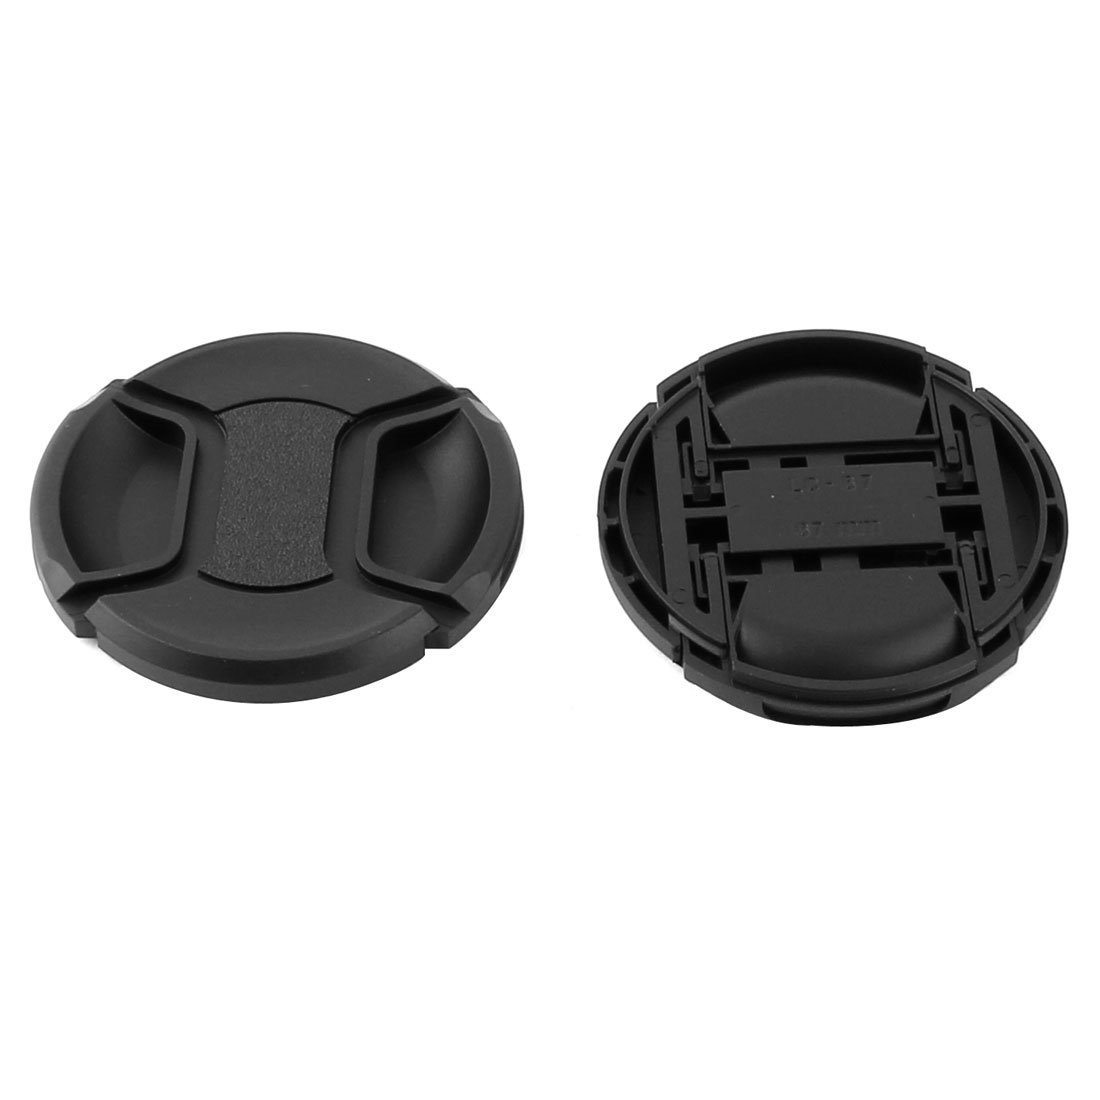 DSLR Camera Plastic Universal 67mm Center Pinch Front Lens Cap Black 2 Pcs